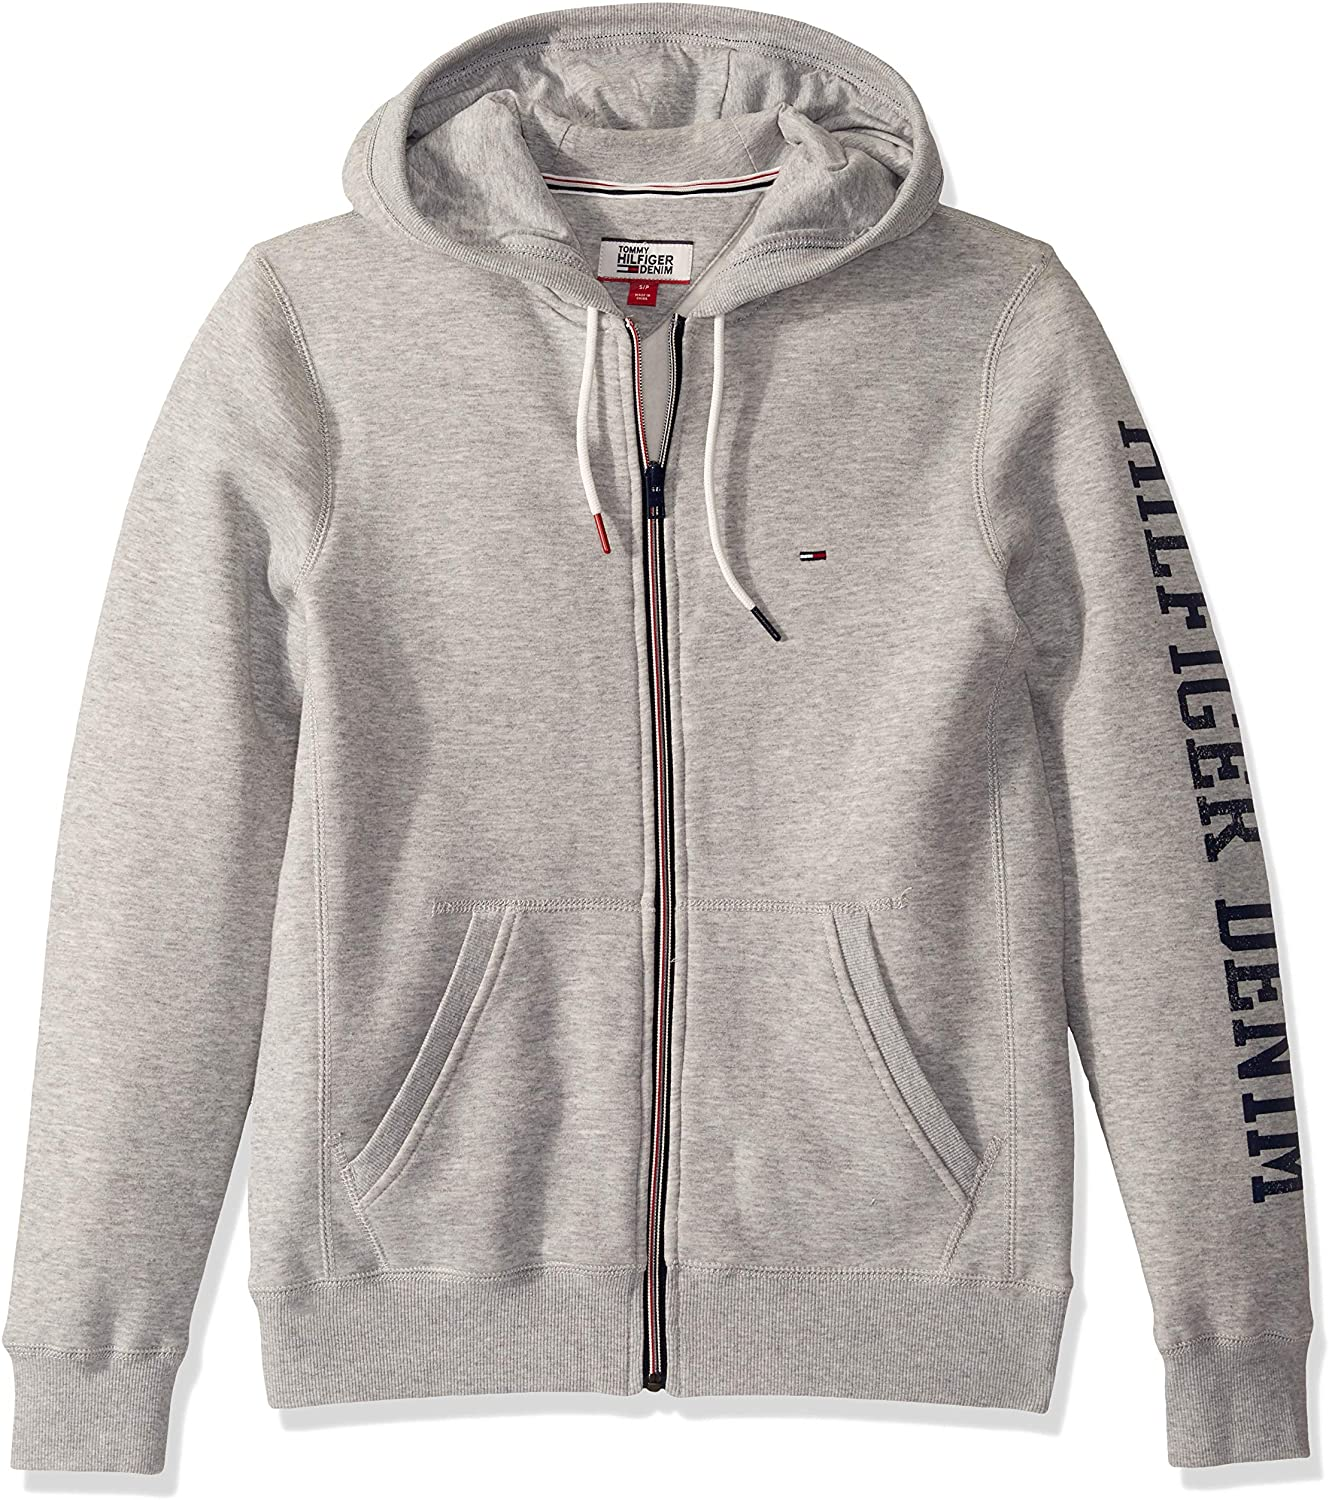 Tommy Hilfiger Men's Thd Full Zip Hoodie Sweatshirt